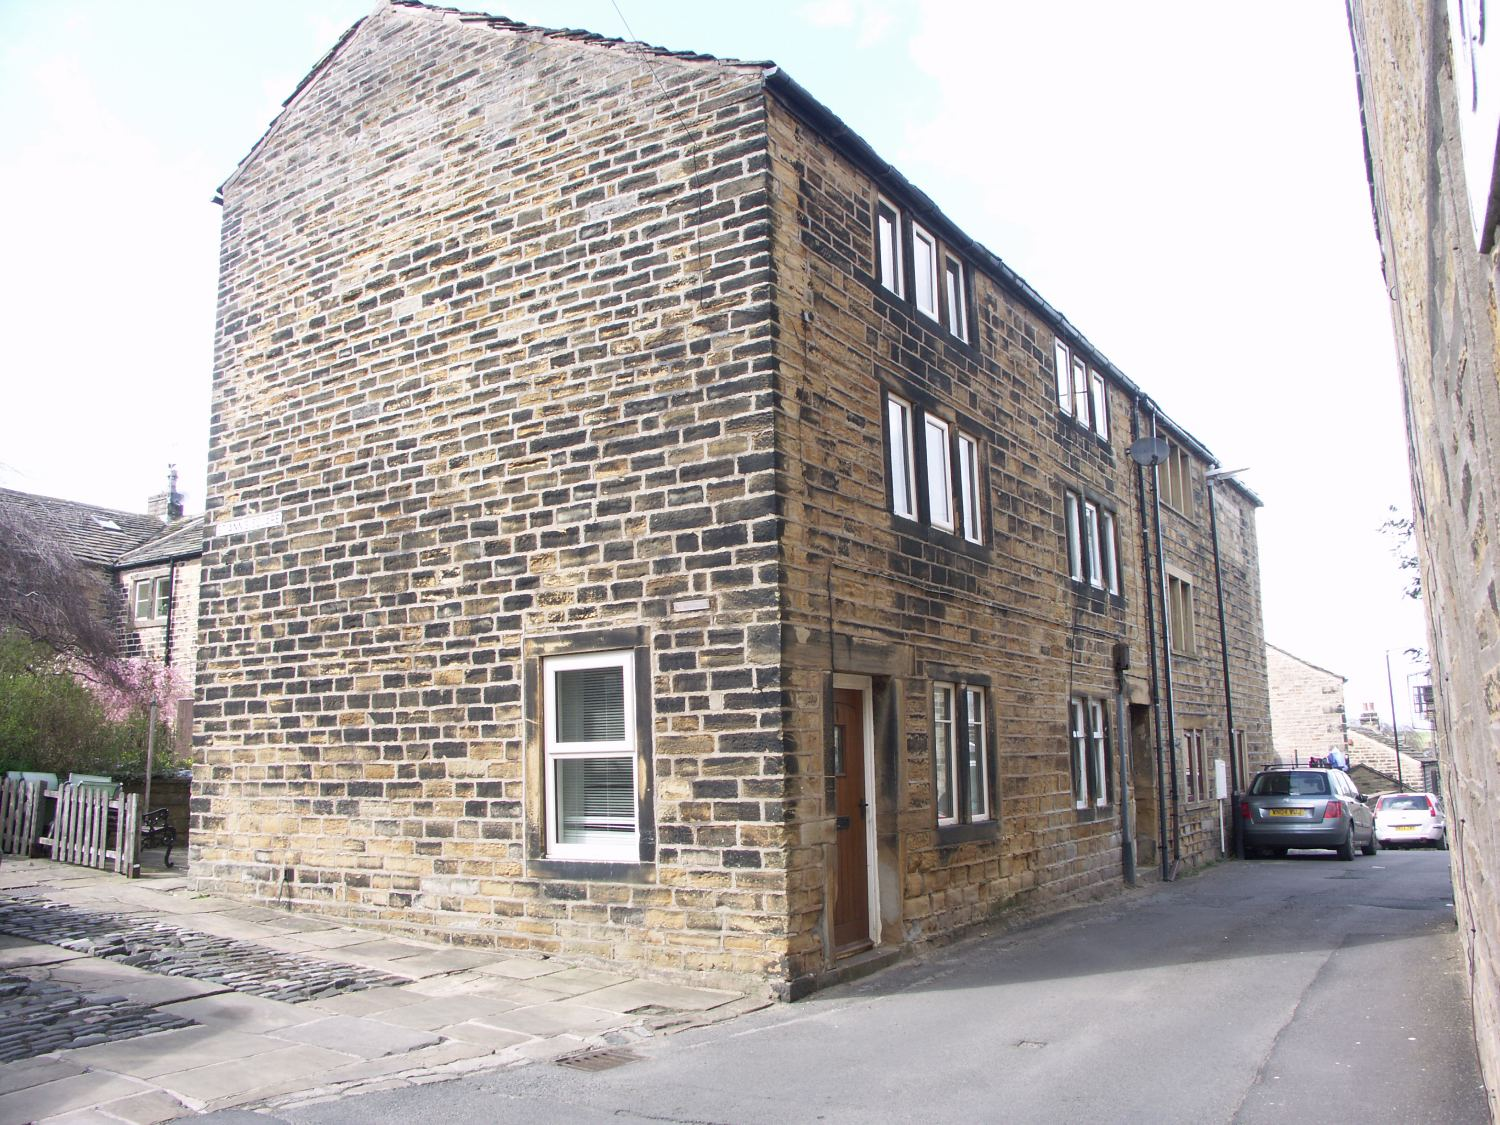 1 Out Lane, Netherthong, Holmfirth, HD9 3EQ